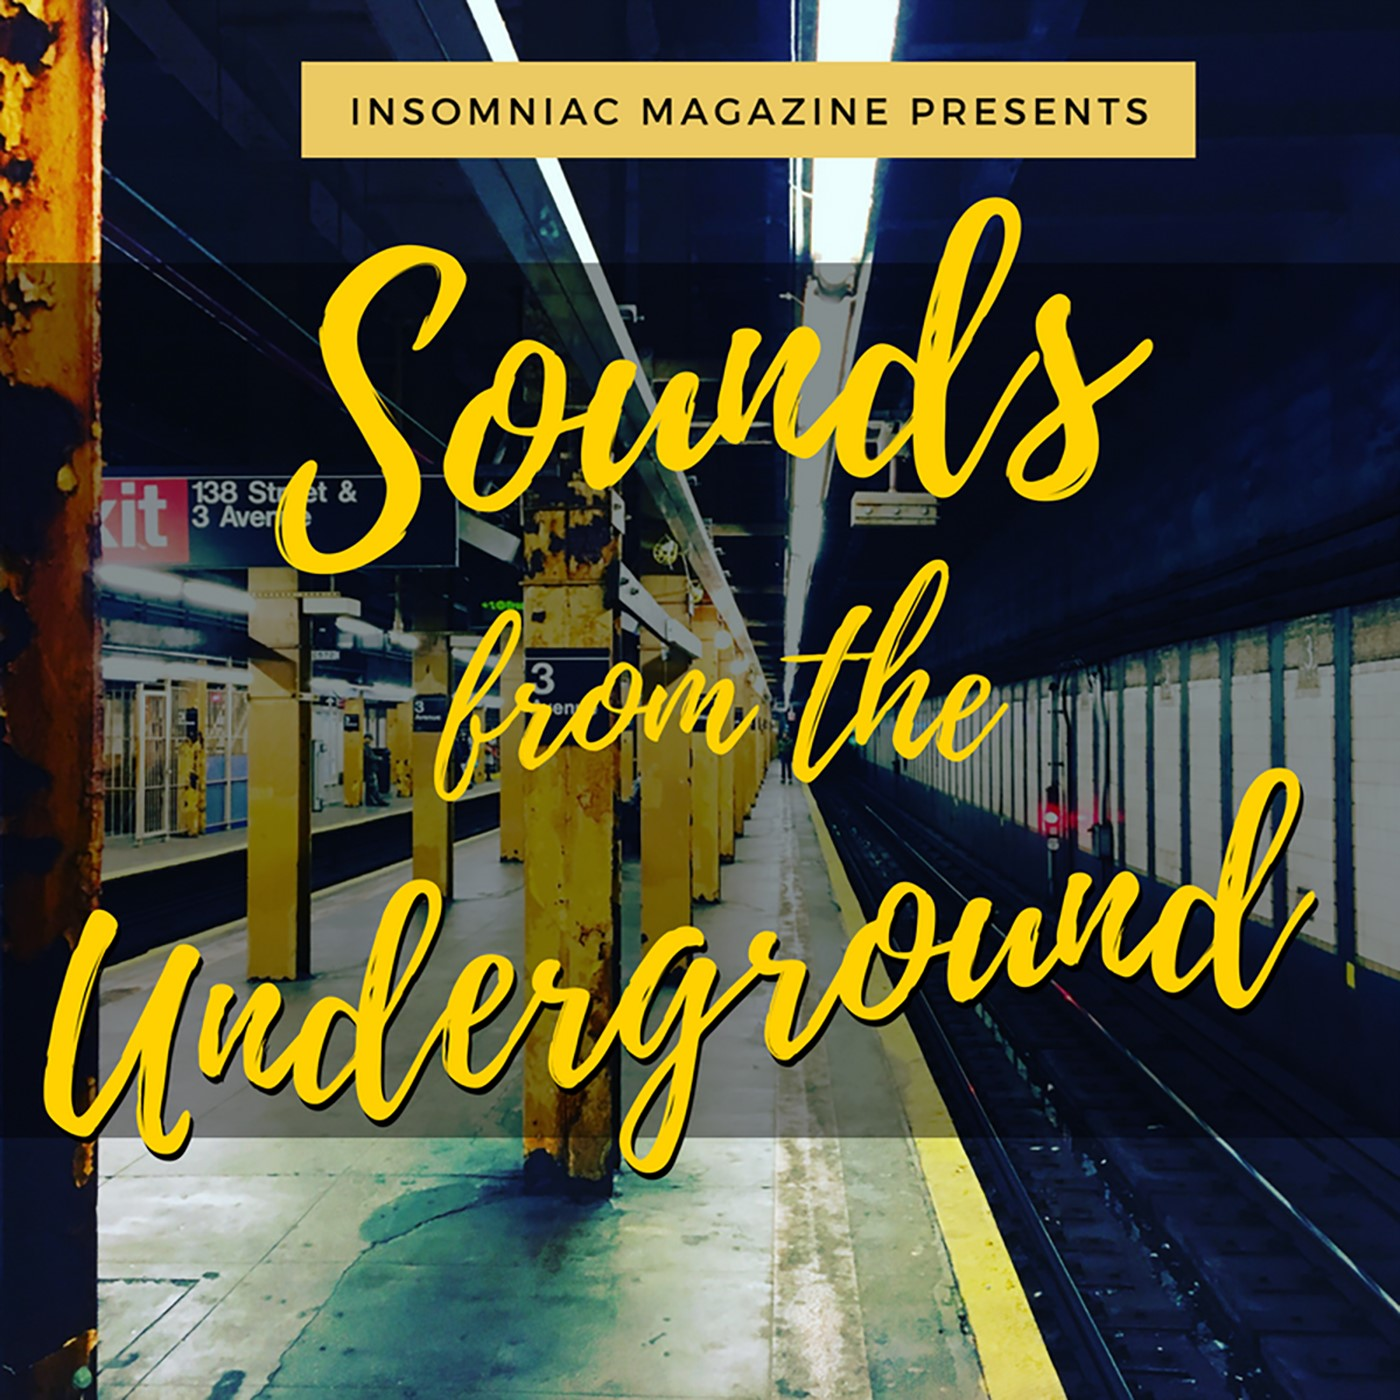 Sounds from the underground hip hop lifestyle and marketing podcast sounds from the underground hip hop lifestyle and marketing podcast presented by insomniac magazine blueprint shares insight on the music industry malvernweather Images